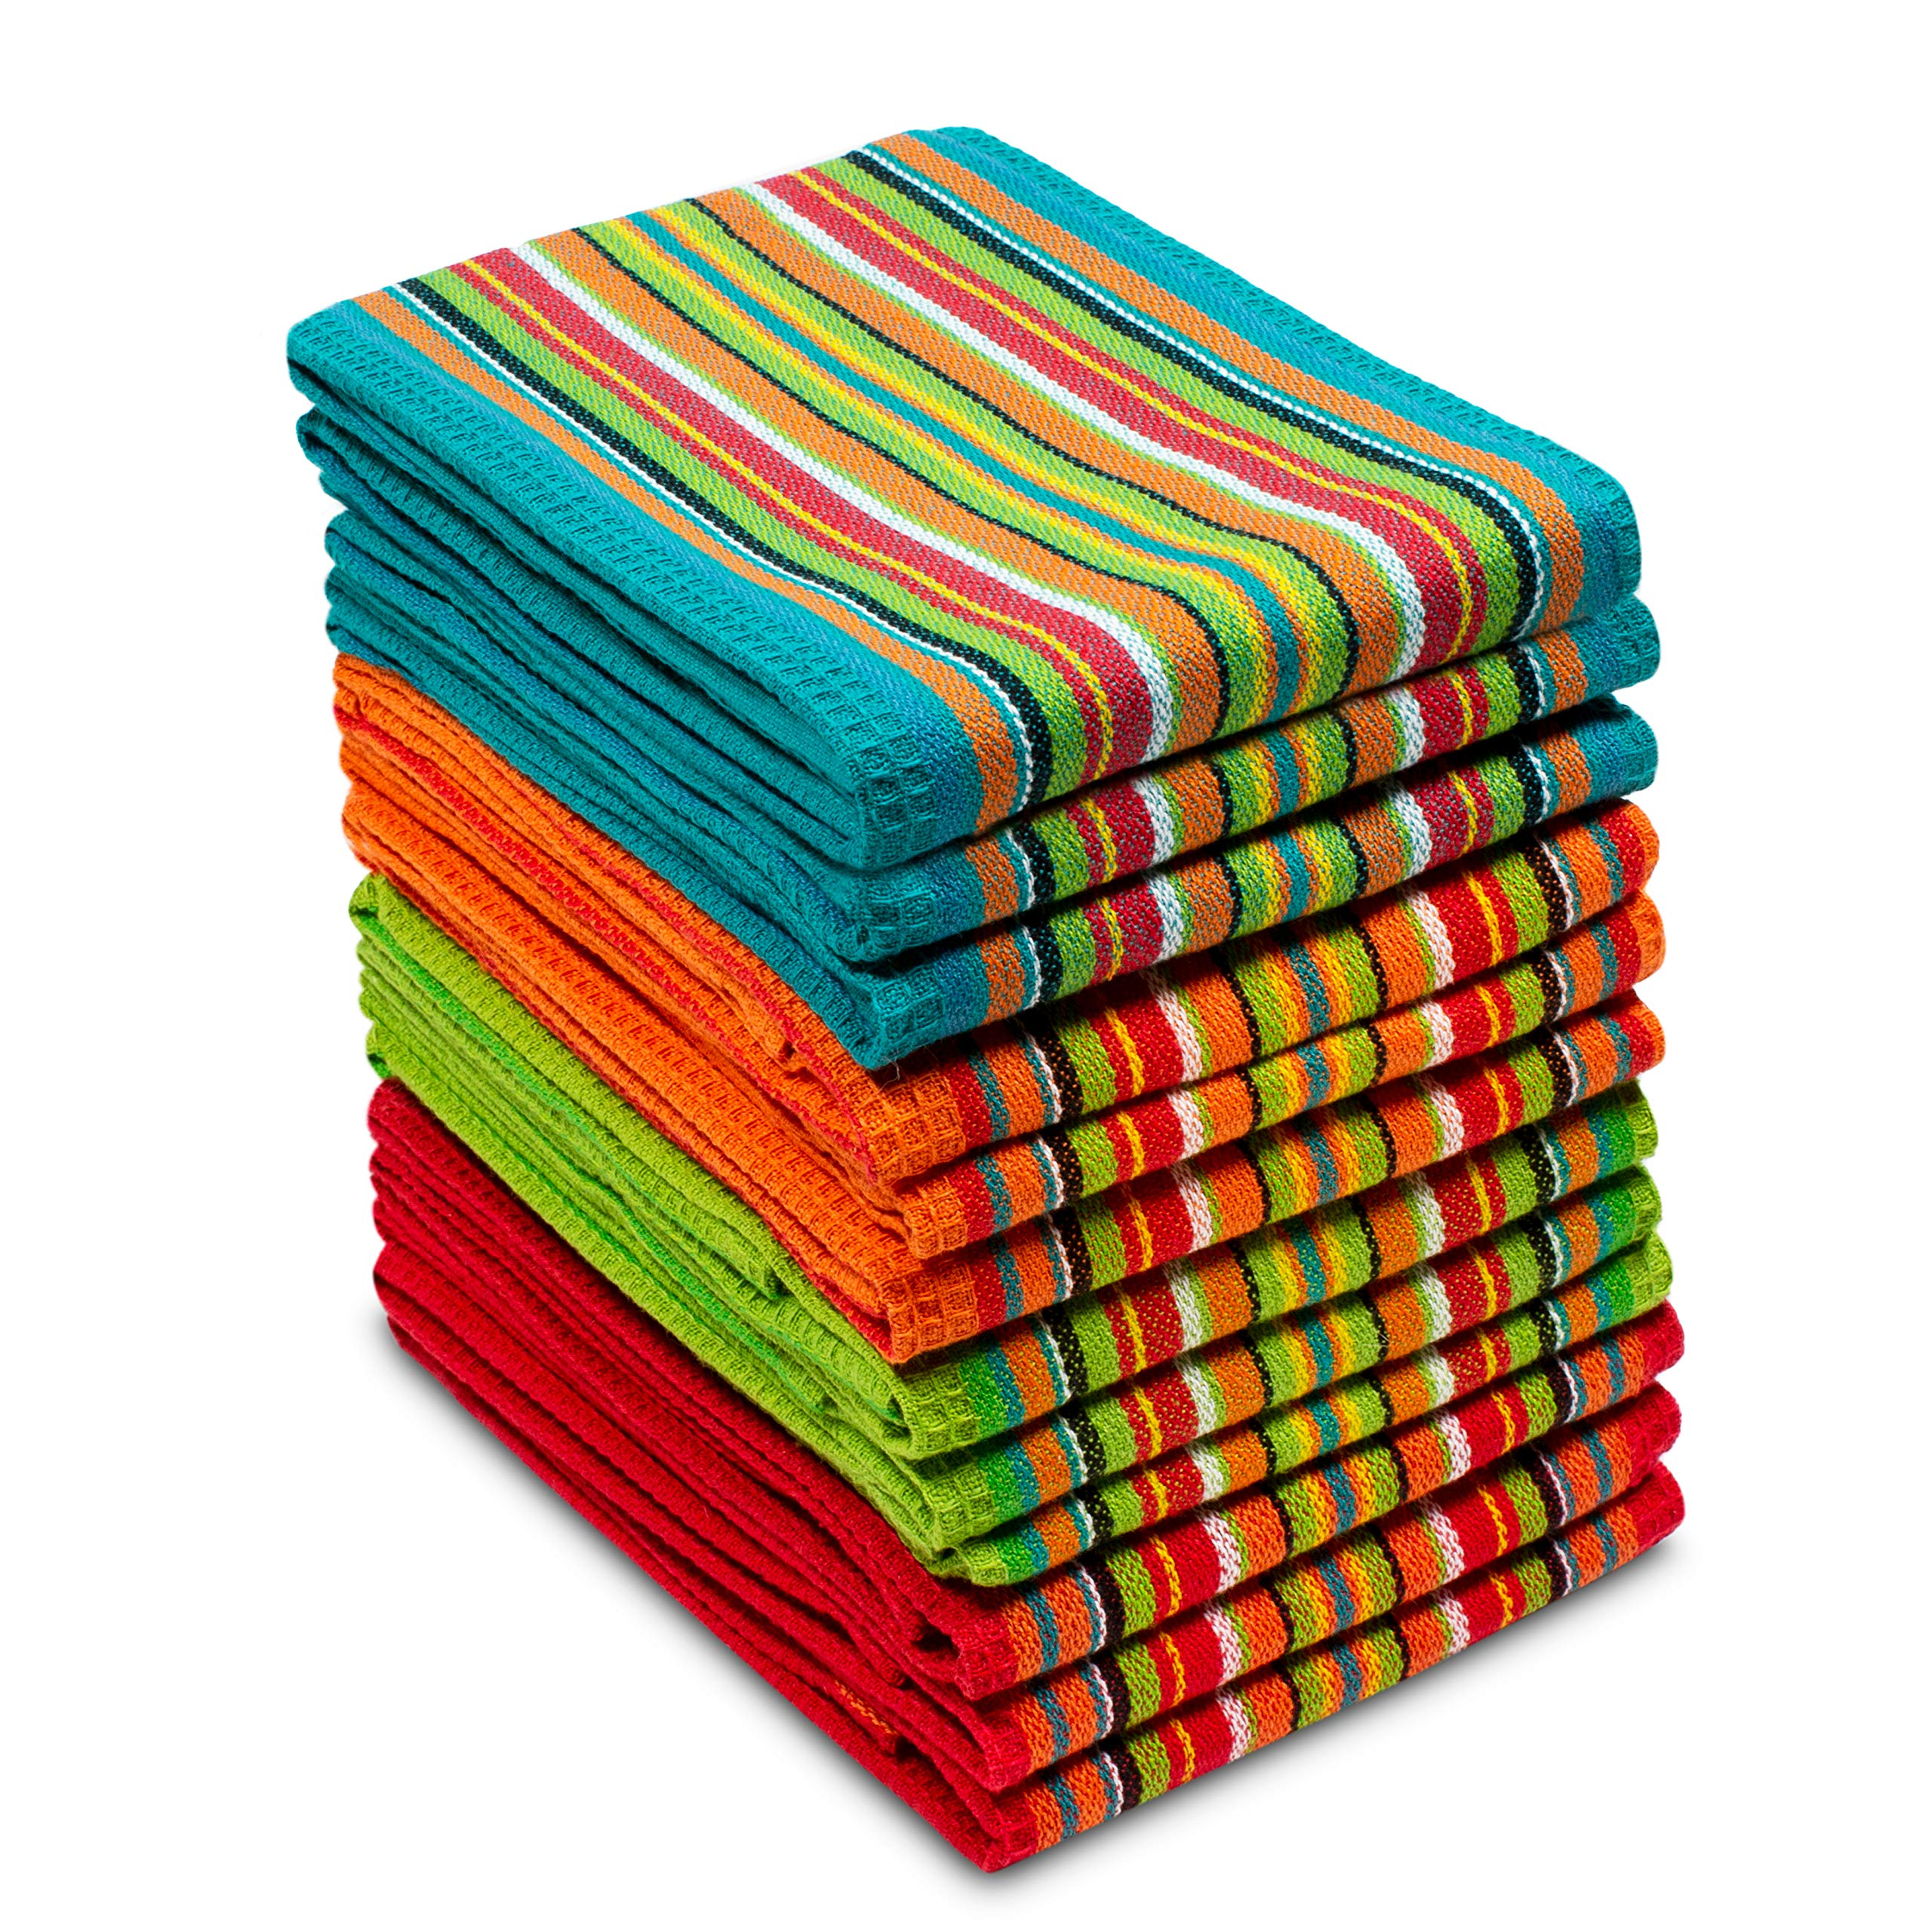 COTTON CRAFT 12 Pack Salsa Stripe Multi-Color Kitchen Towels 16x28 Inches- 100% Cotton by COTTON CRAFT